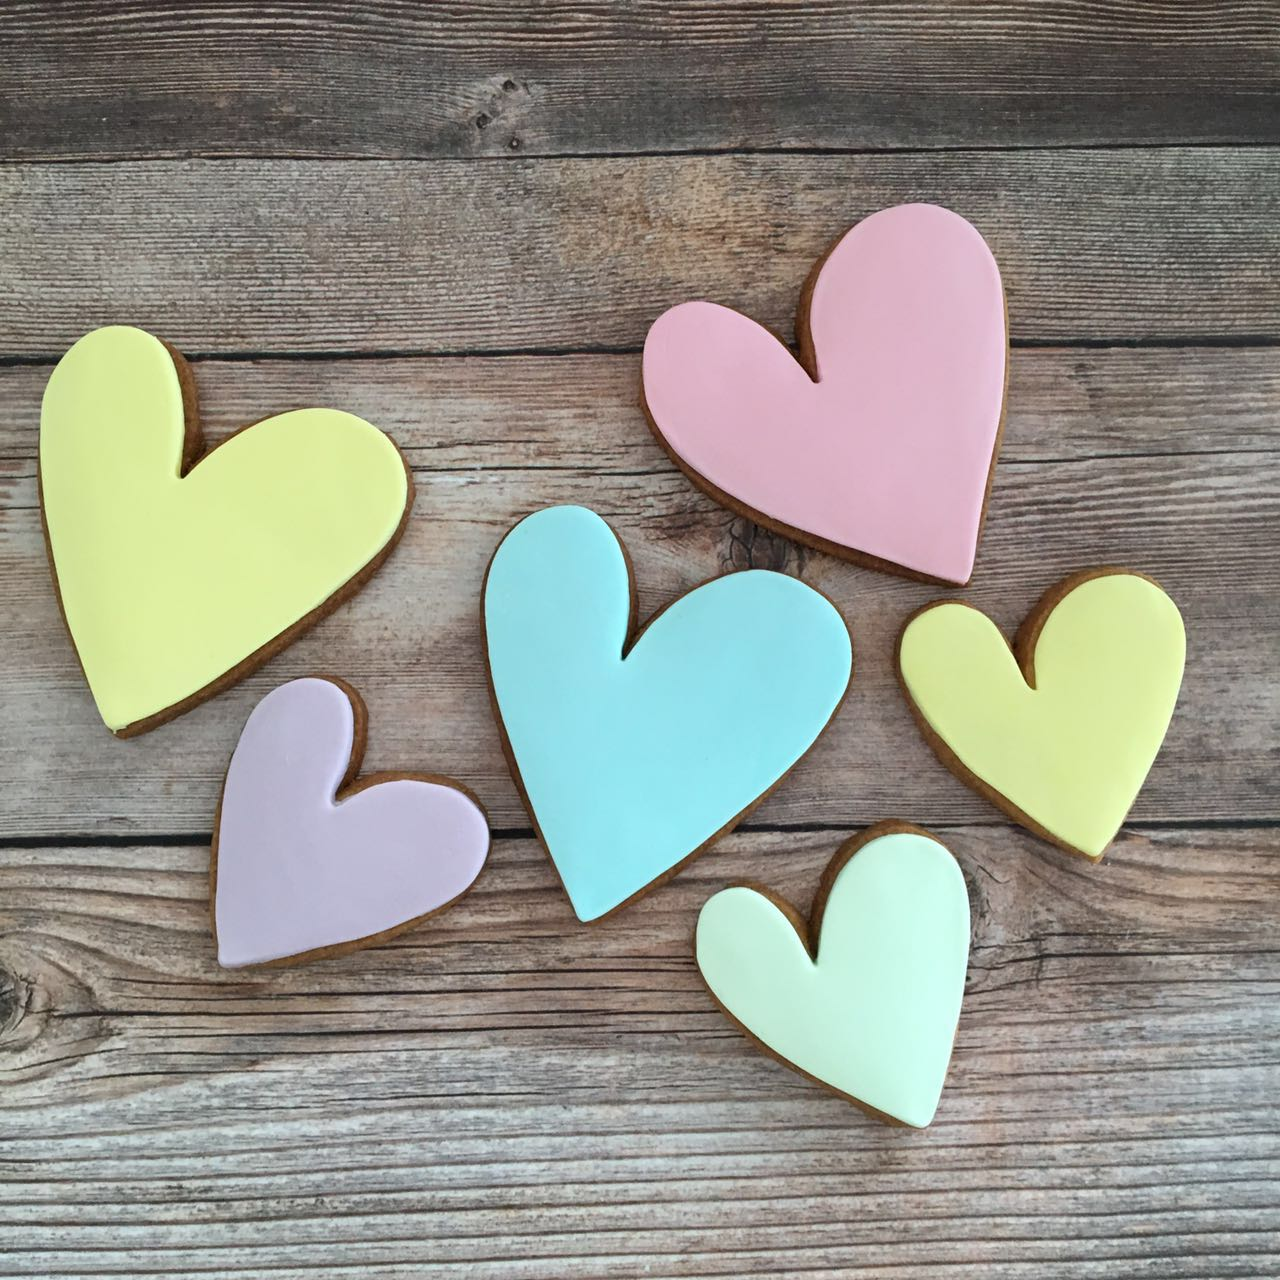 Pastel colored fondant heart cookies